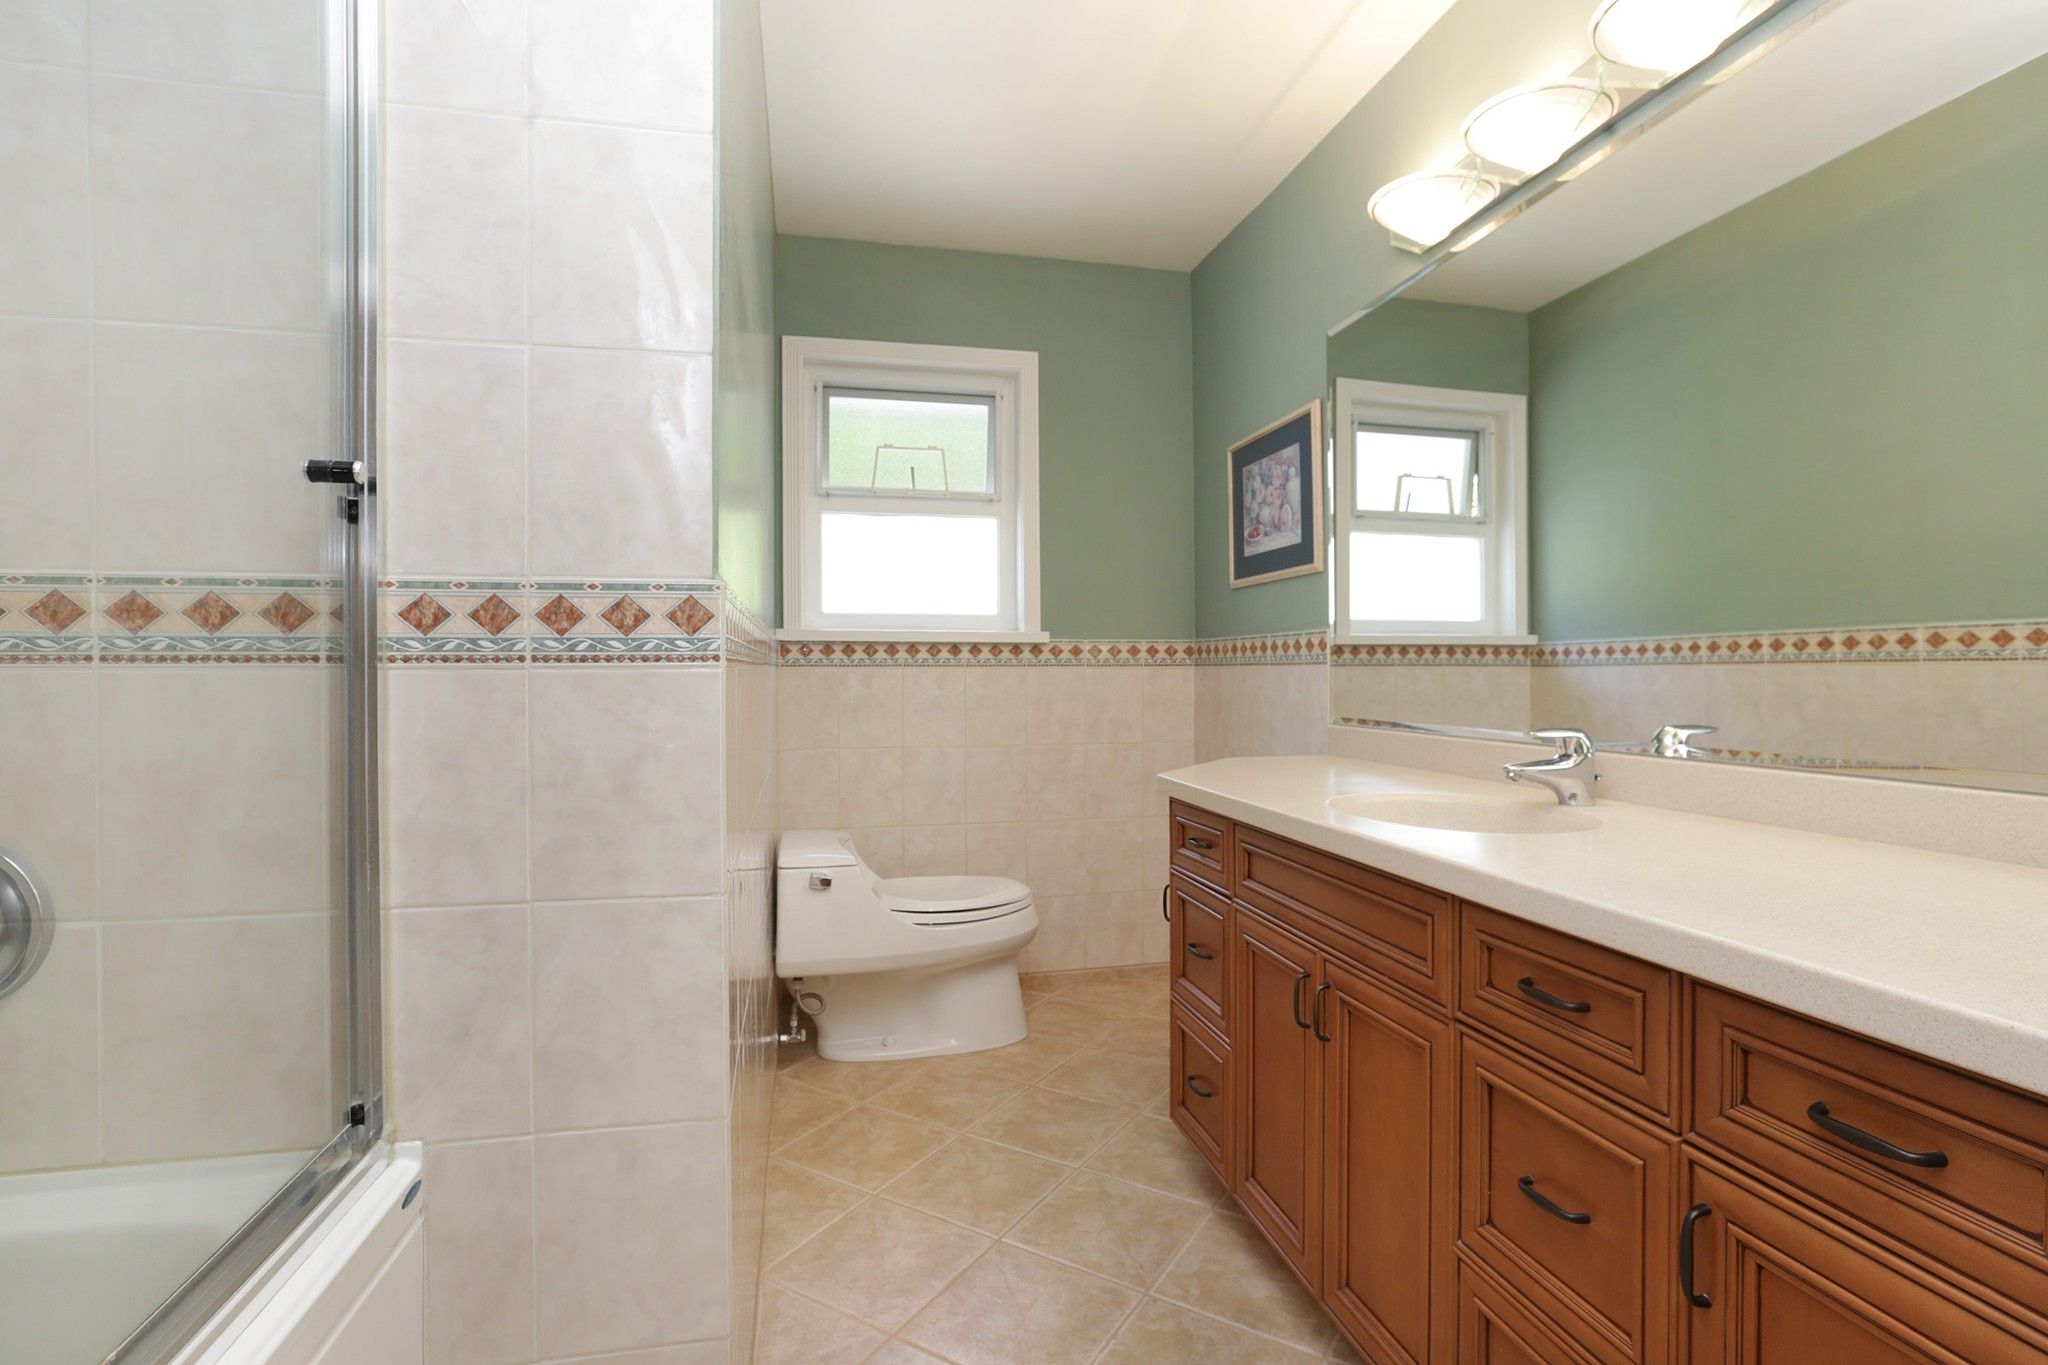 Photo 13: Photos: 372 VENTURA Crescent in North Vancouver: Upper Delbrook House for sale : MLS®# R2284717